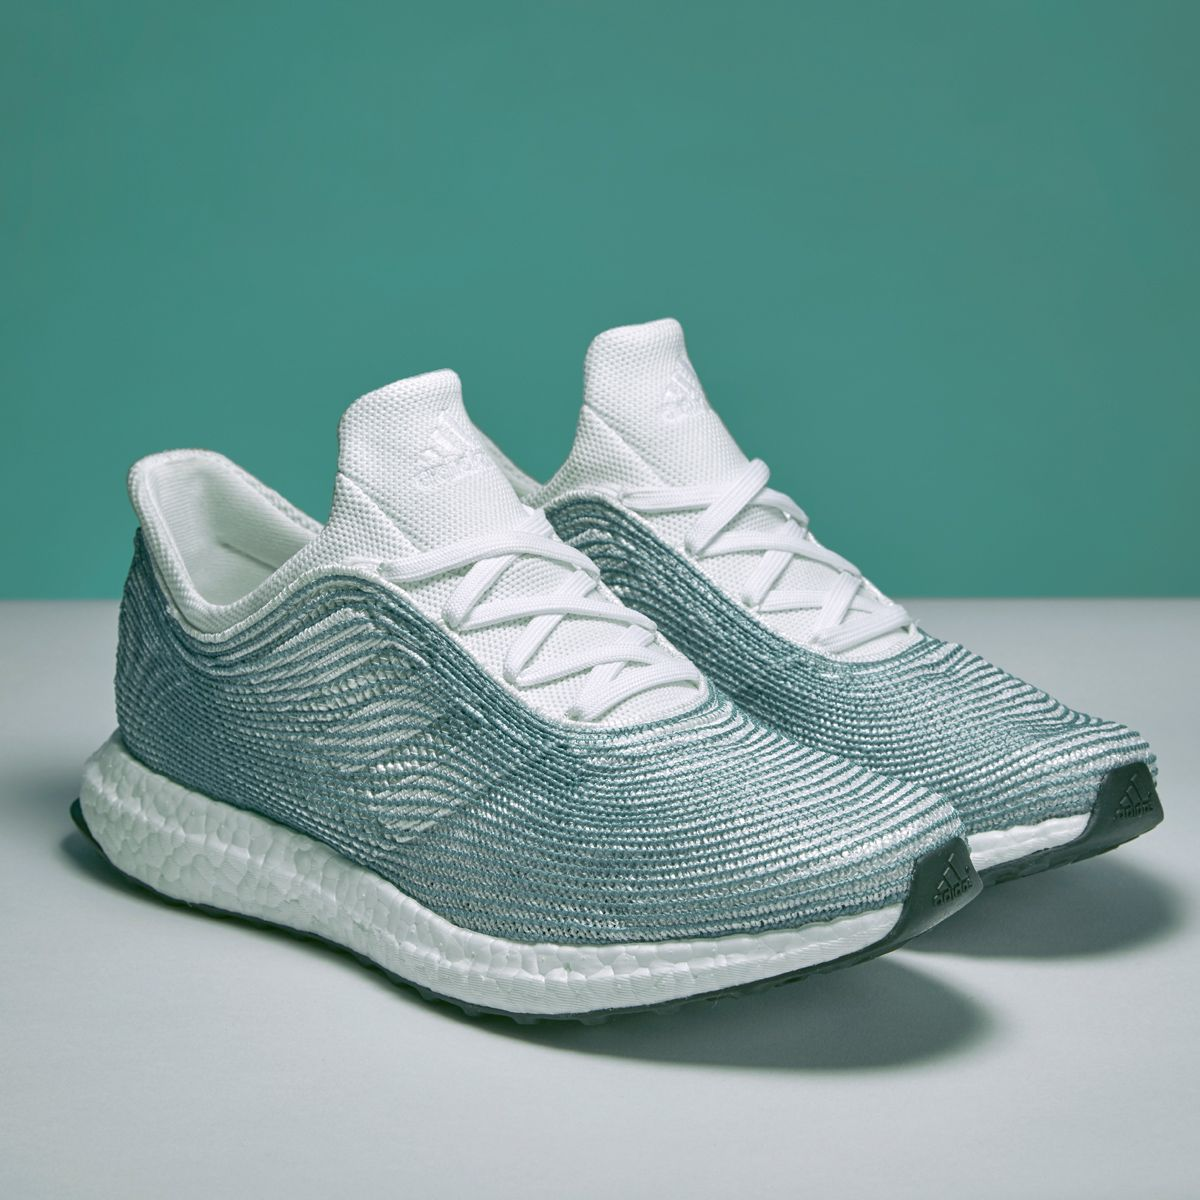 adidas x Parley: Shoes Made From Ocean Plastic | Nike schuhe